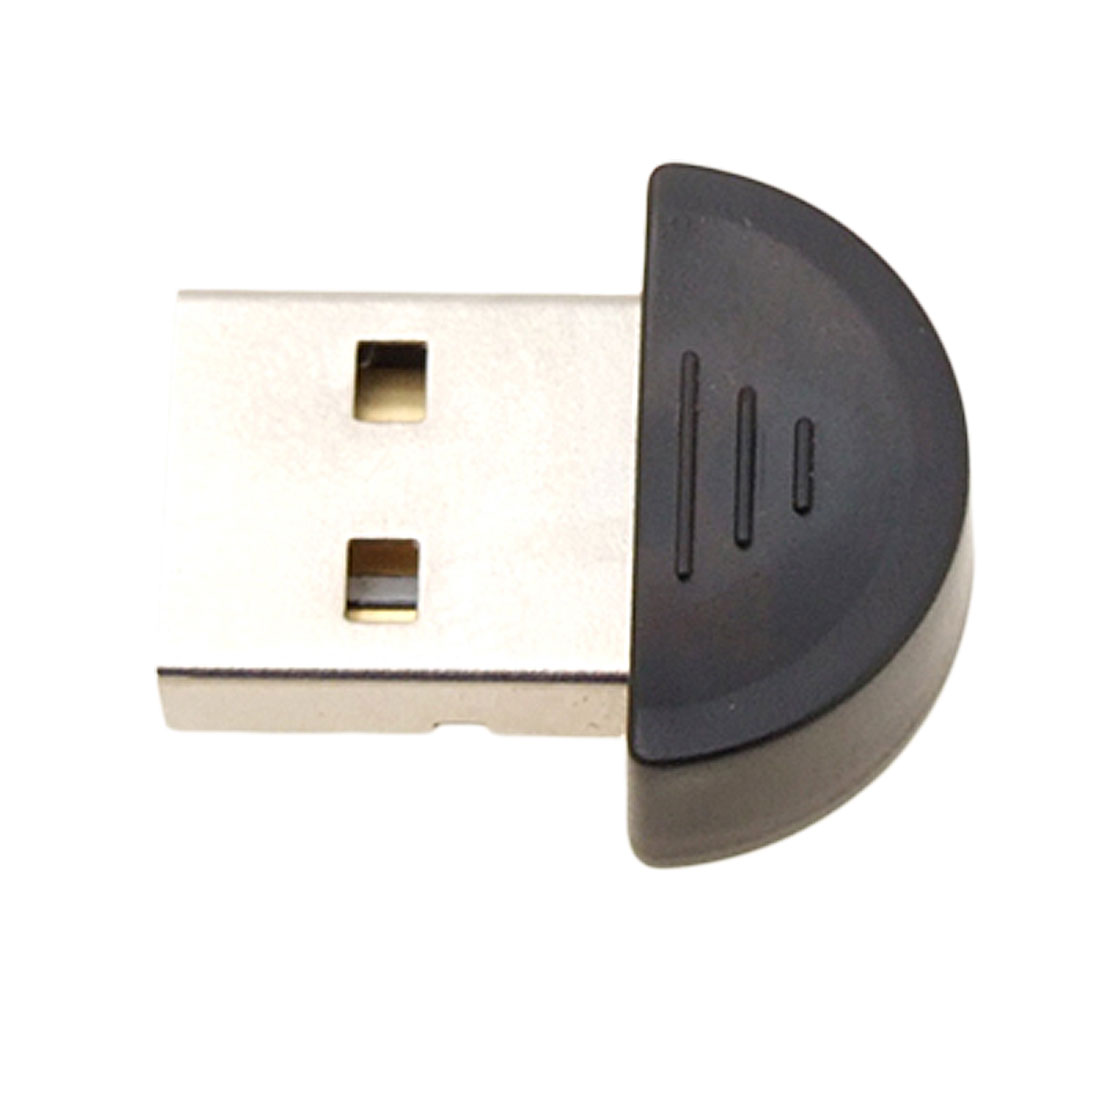 Mini Small Mushroom bluetooth USB Dongle Adapter